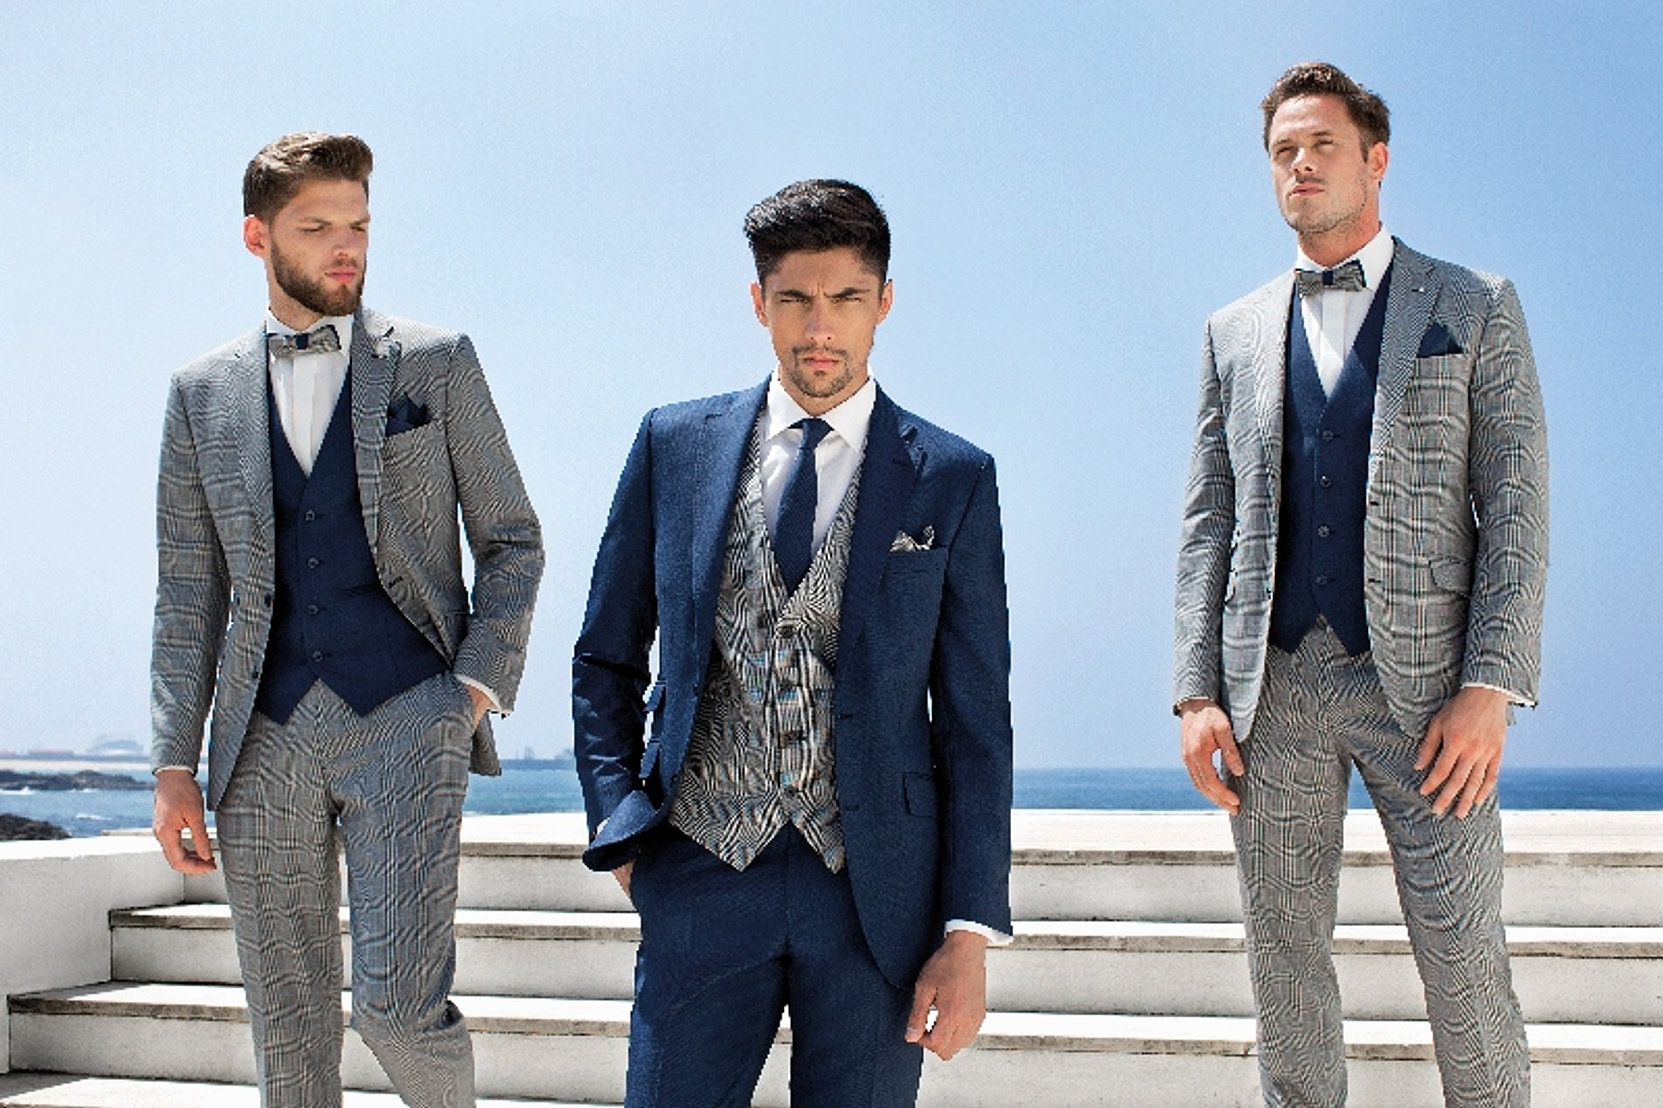 couturepourhomme wedding suit hire